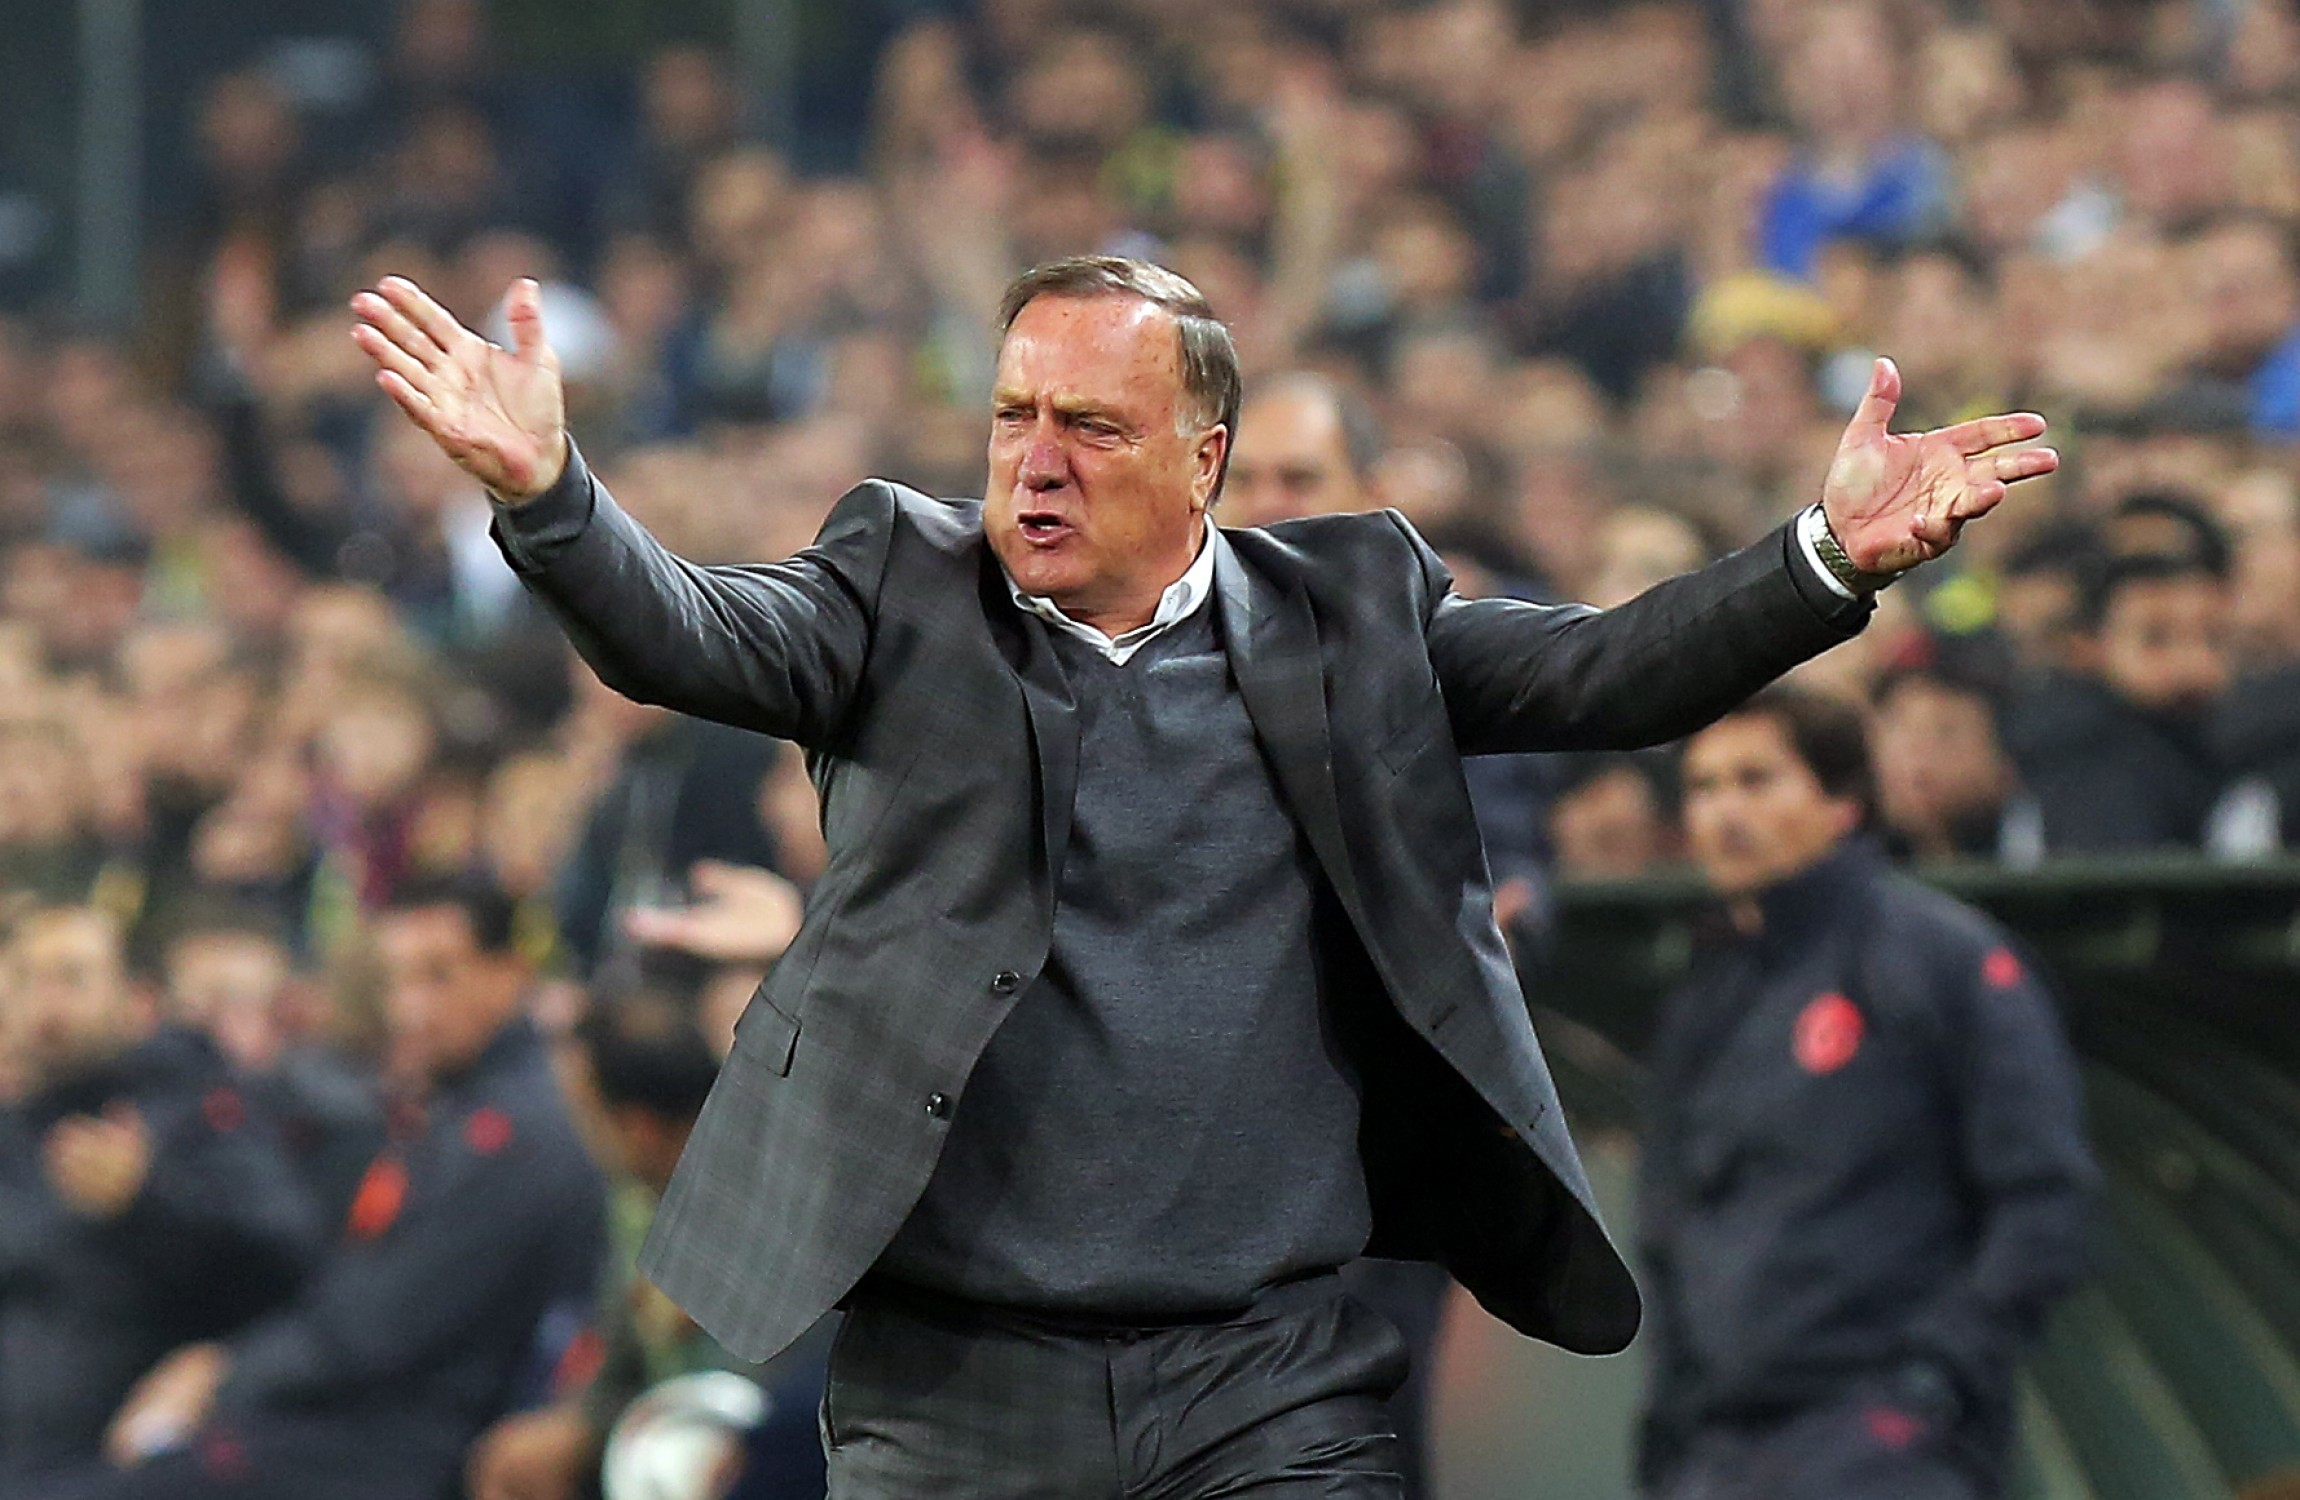 Advocaat most recently was manager of Fenerbahce. Image Depo